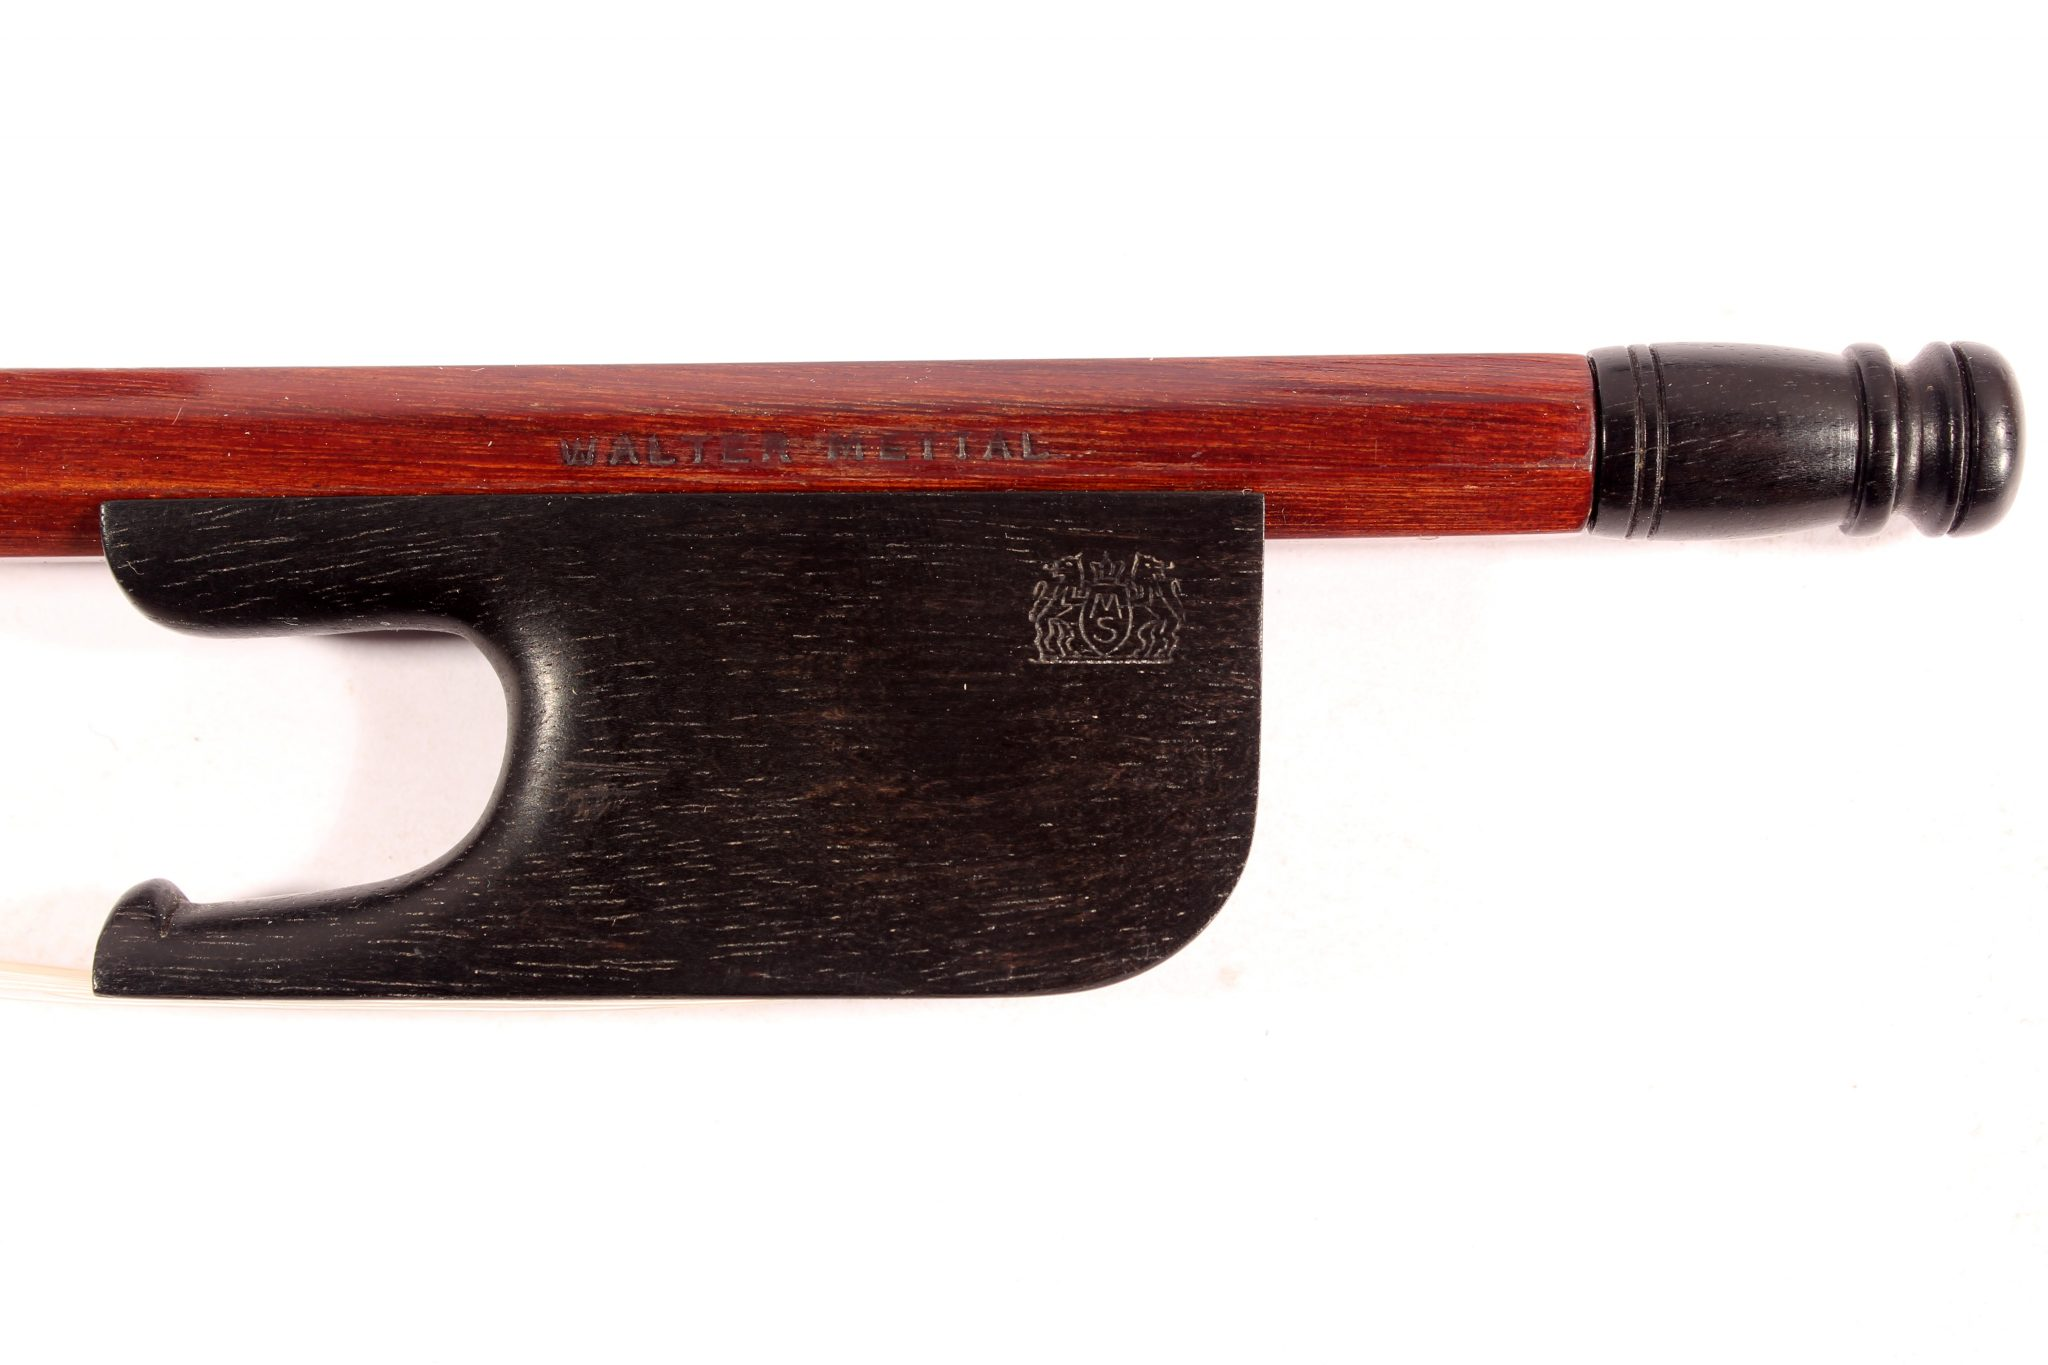 Baroque Cello bow by Walter Mettal for sale at Bridgewood and Neitzert London